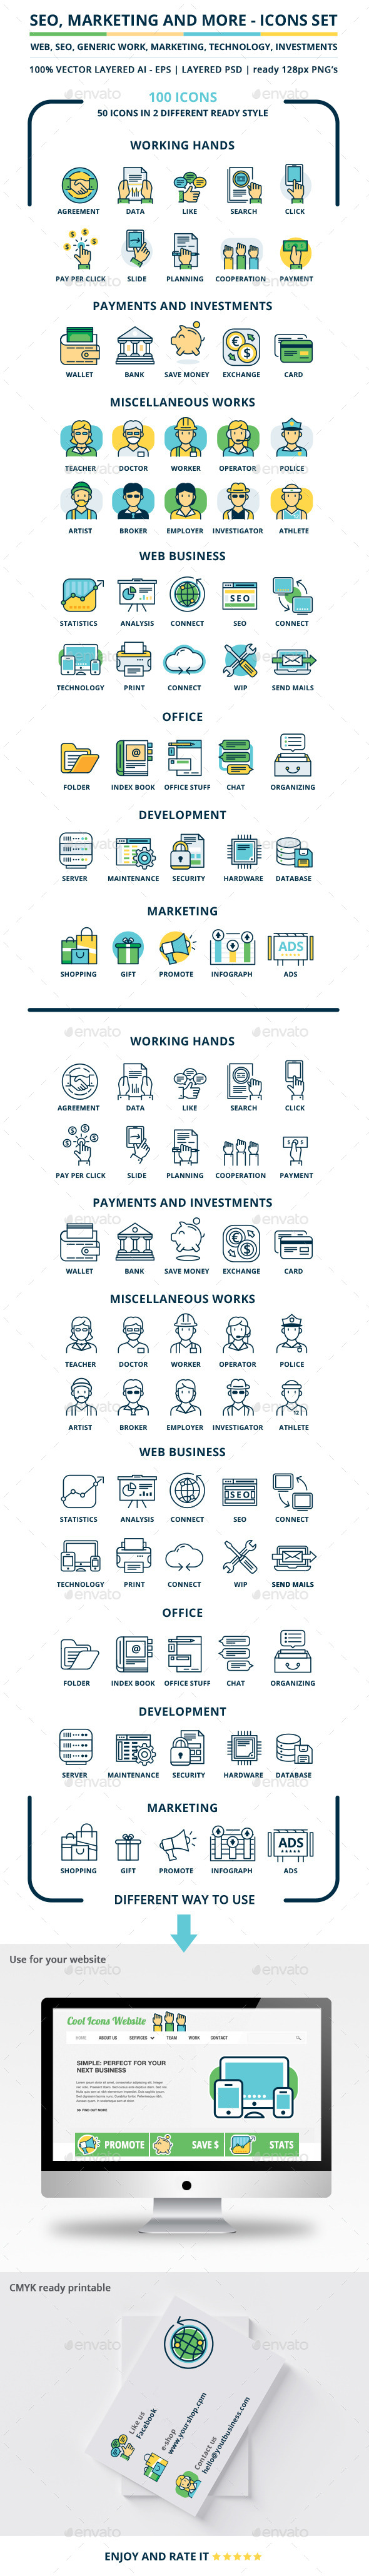 Seo, Marketing And More Icons Set - Web Icons